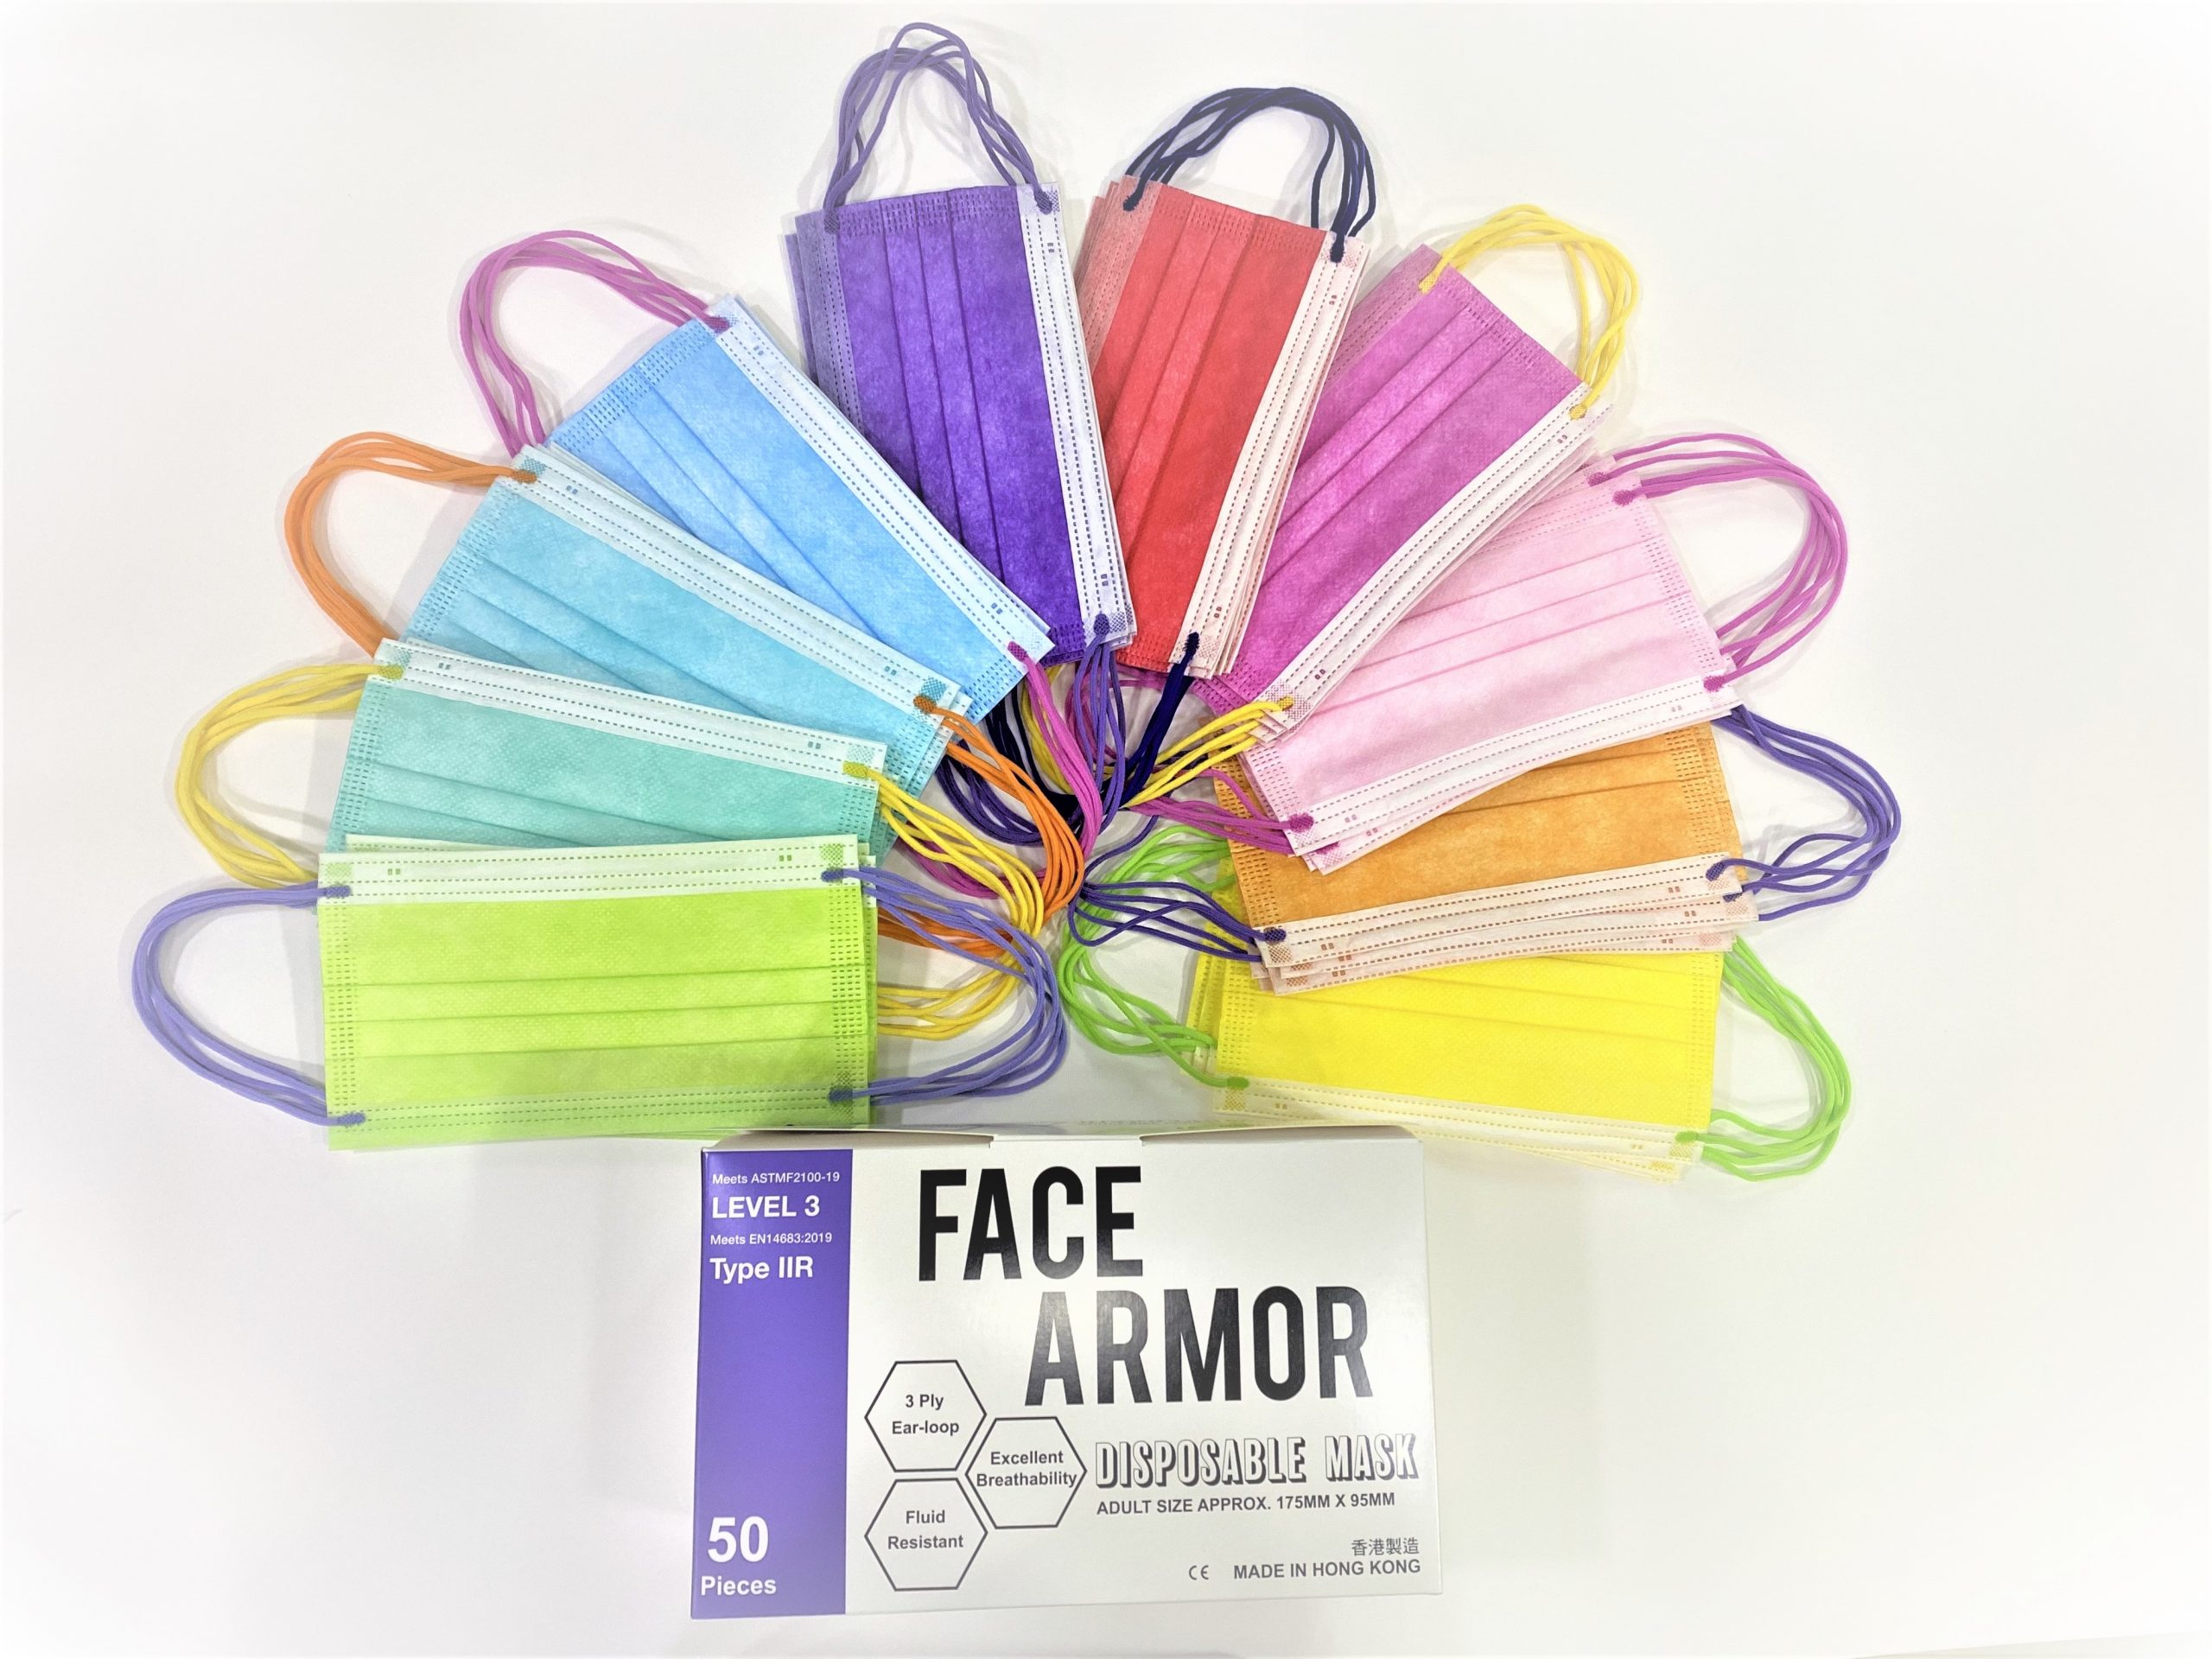 Face Armor Disposable Masks | ASTM LEVEL 3 | Made in Hong Kong| 50 PIECES | MIXED COLOR WITH RAINBOW EARLOOP (LIMITED EDITION)